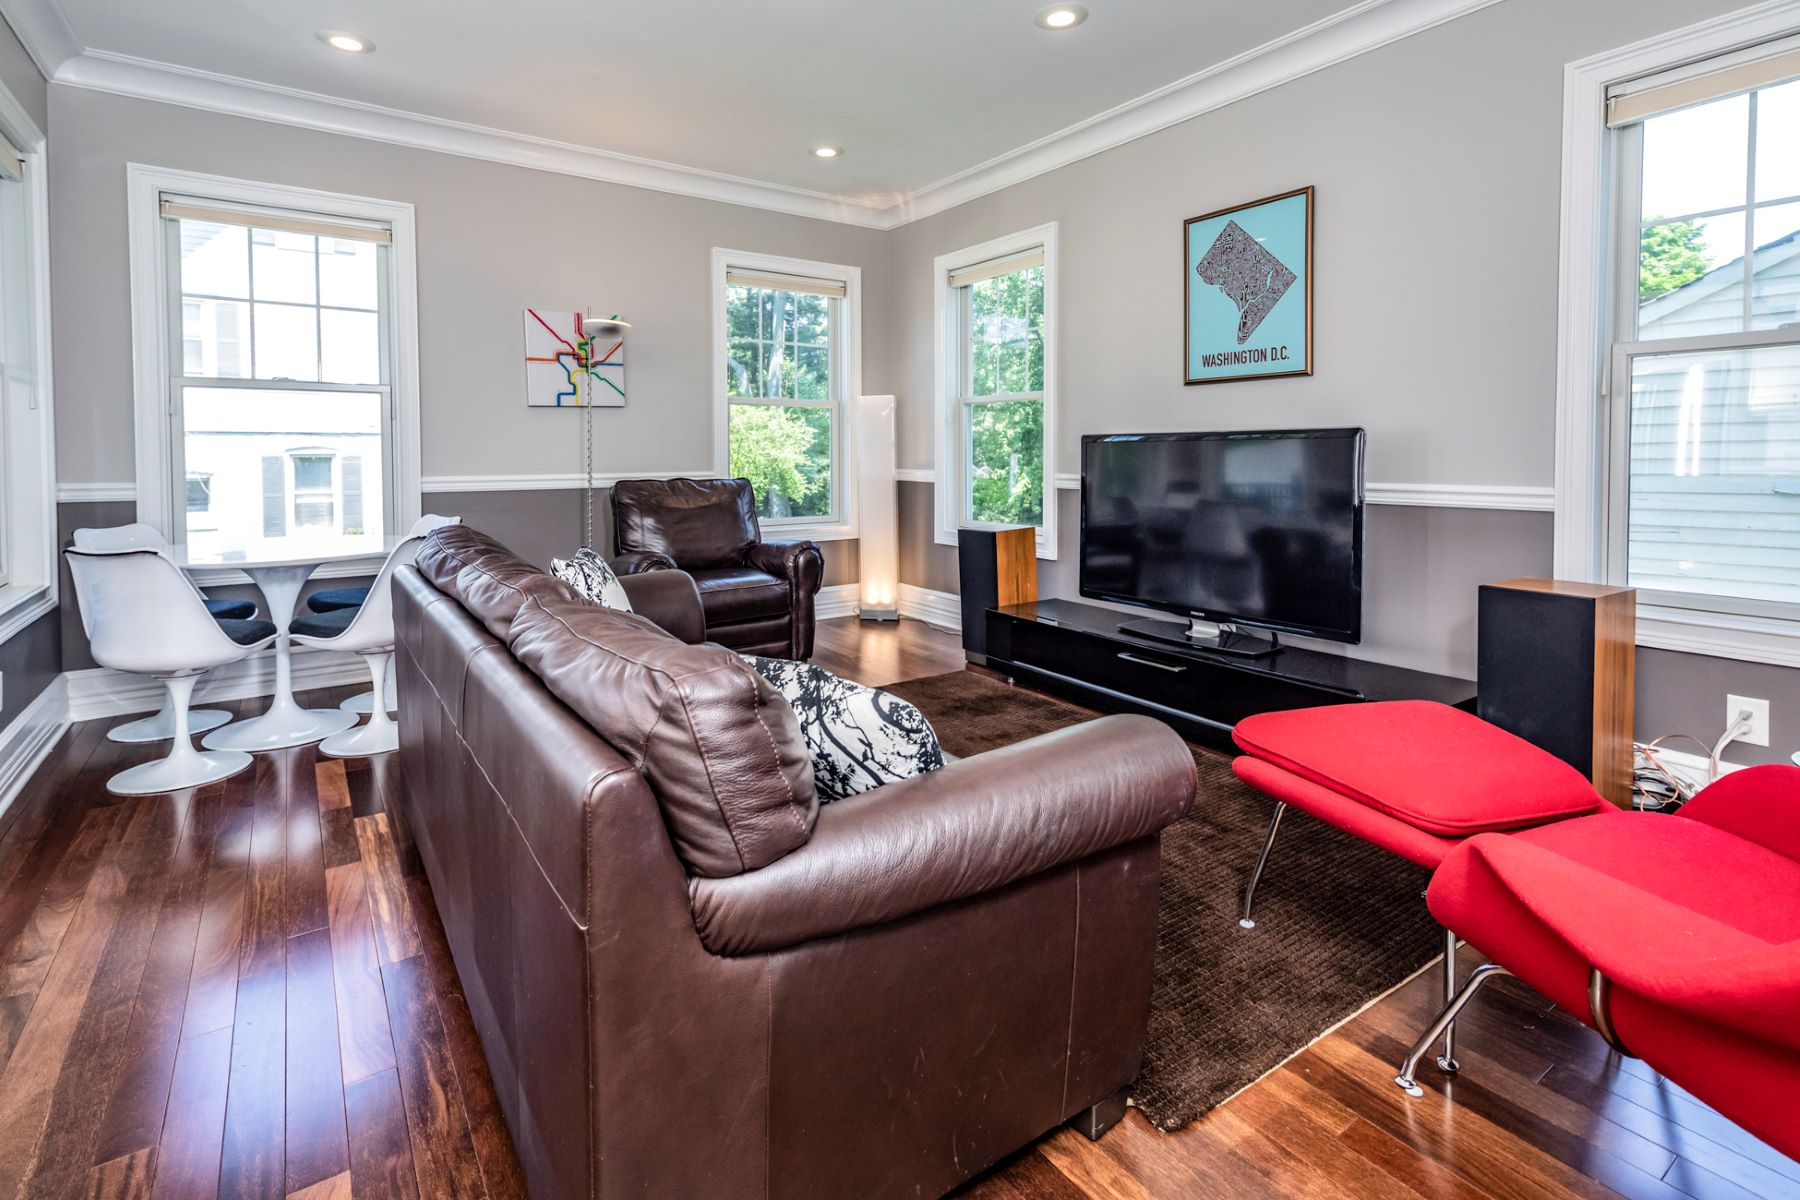 """Additional photo for property listing at Beautifully Designed on a """"Tree Street"""" 64 Spruce Street, Princeton, New Jersey 08542 United States"""